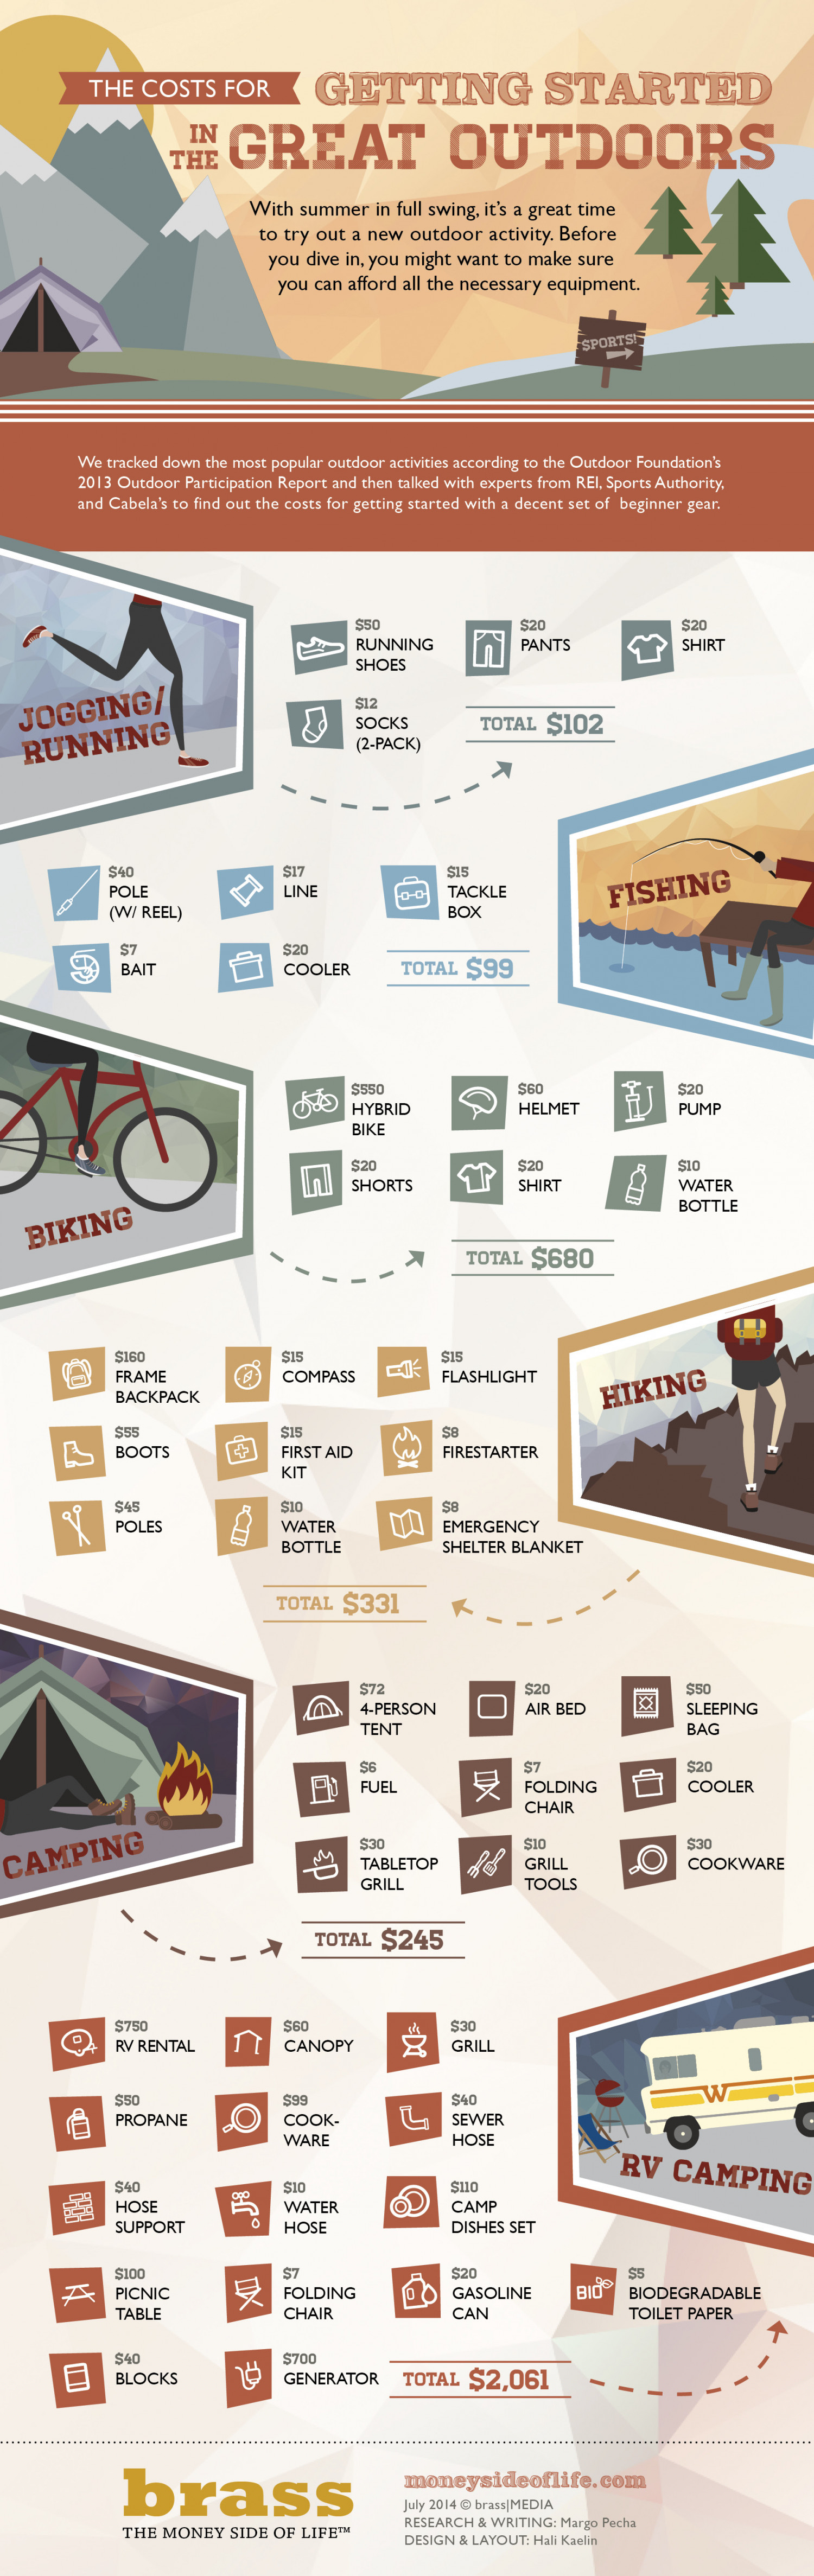 The Costs for Getting Started in the Great Outdoors Infographic